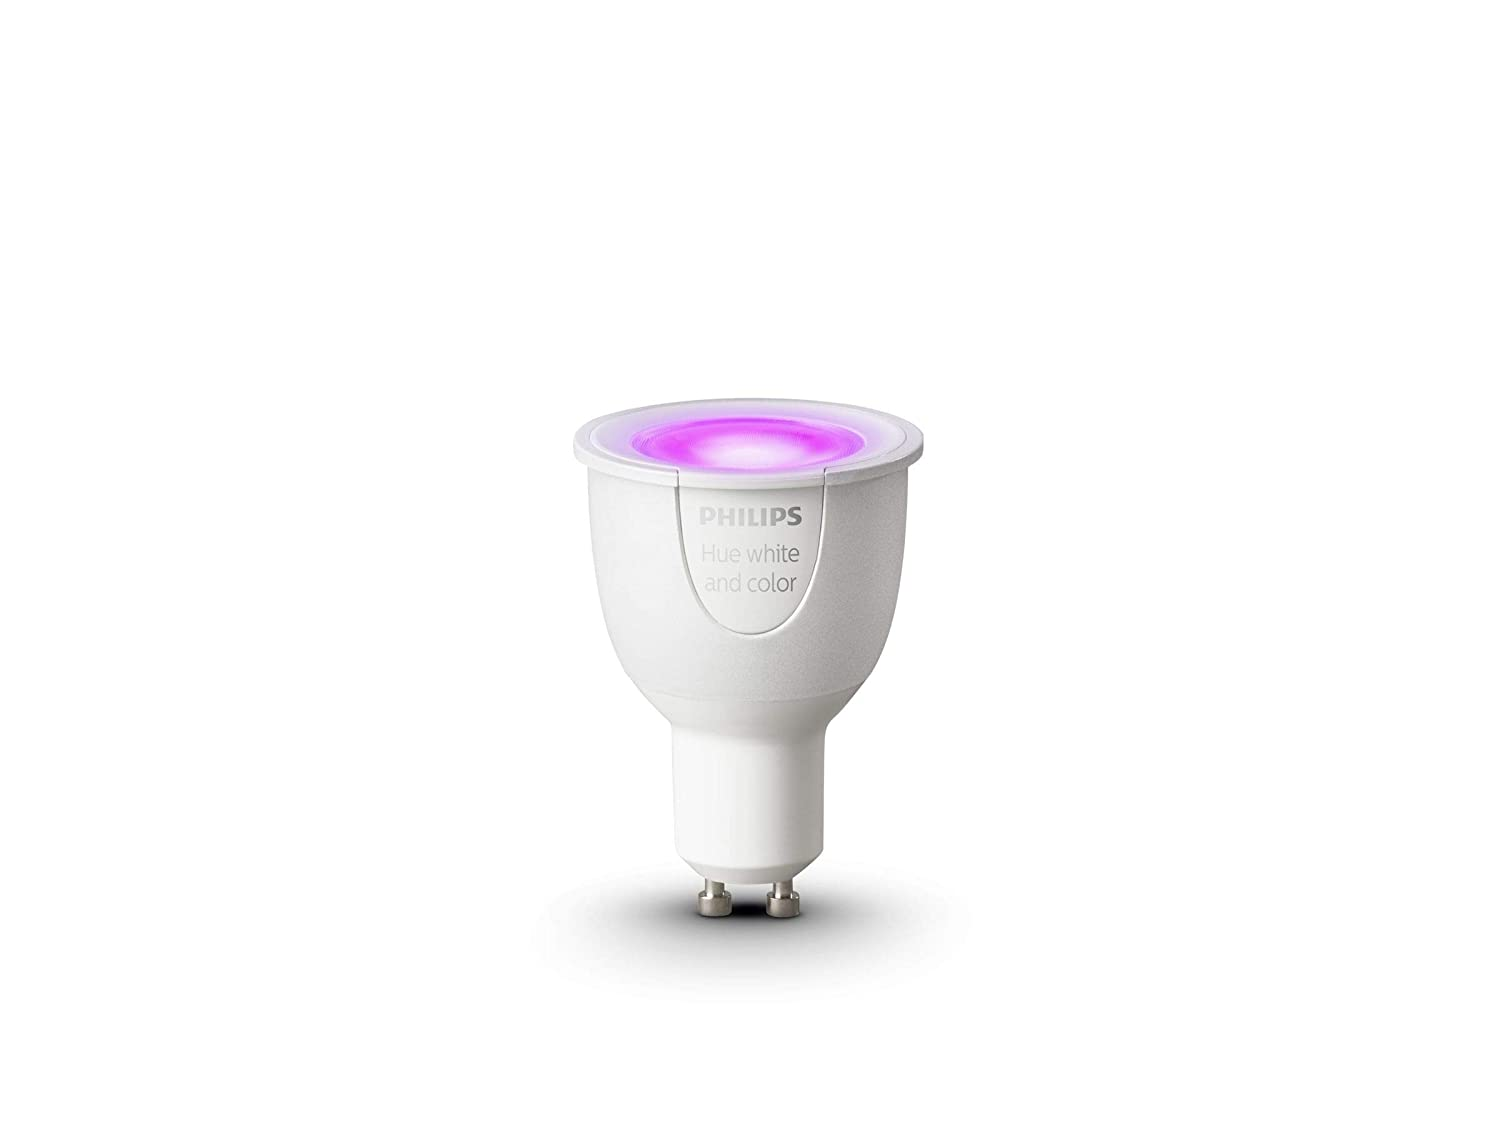 Hue Lampen Kopen : Philips hue white color ambiance gu led lampe erweiterung